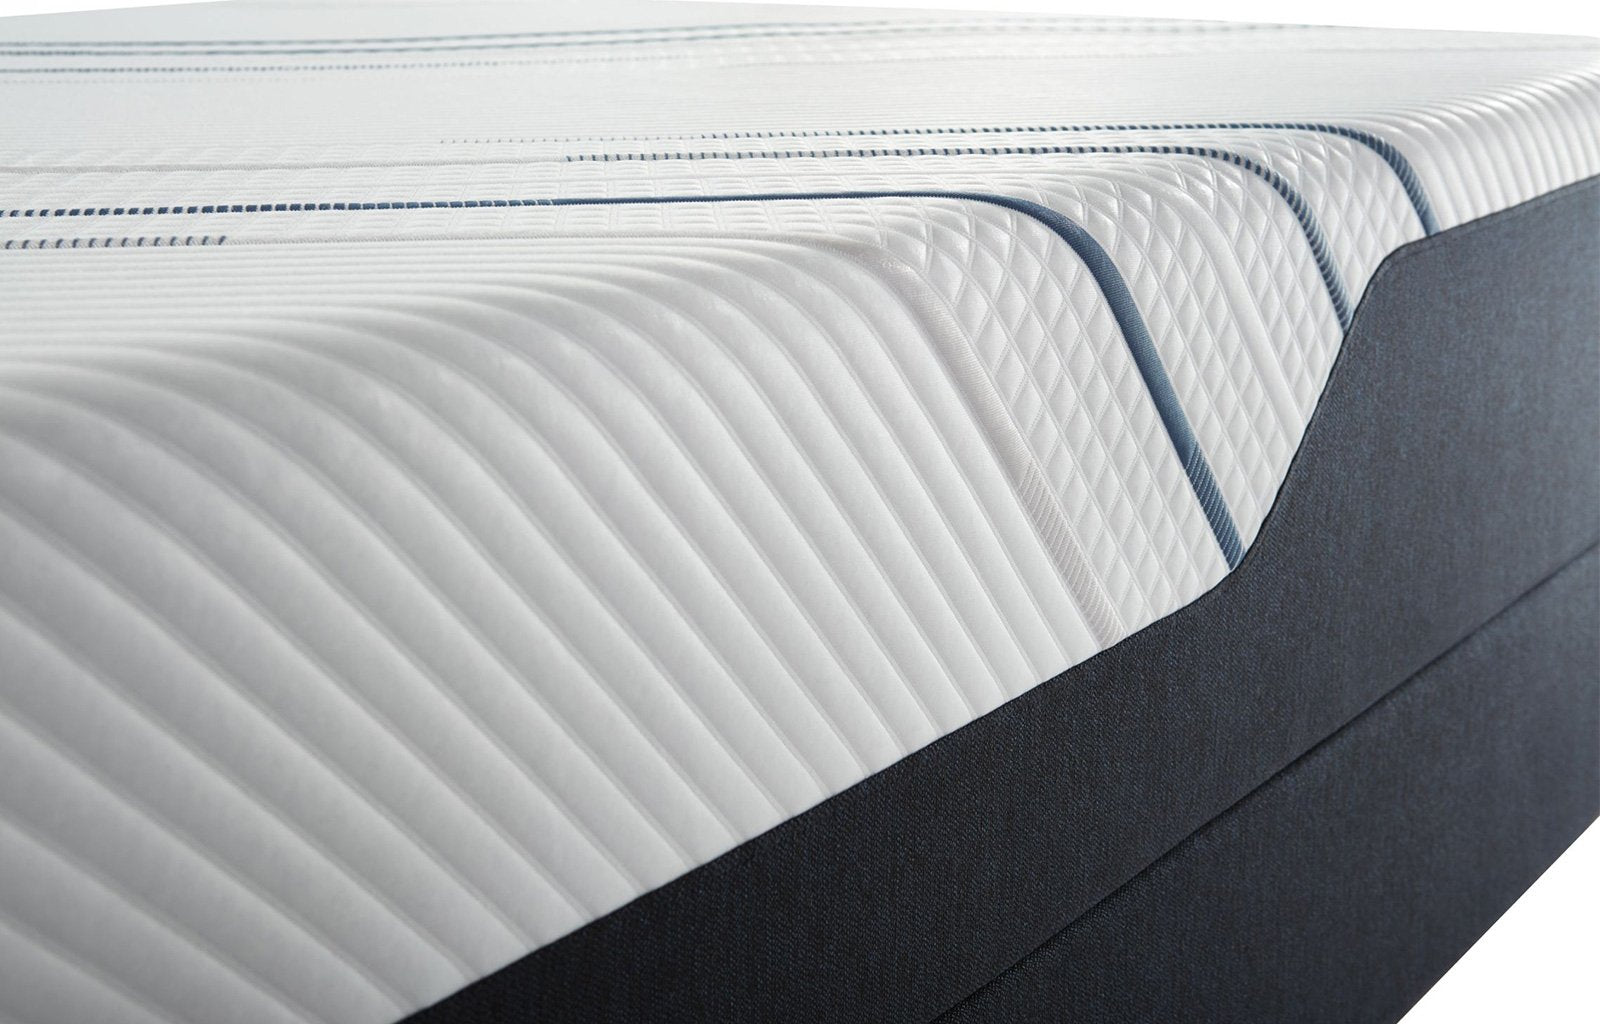 iComfort Carbon Fiber 4000 Mattress